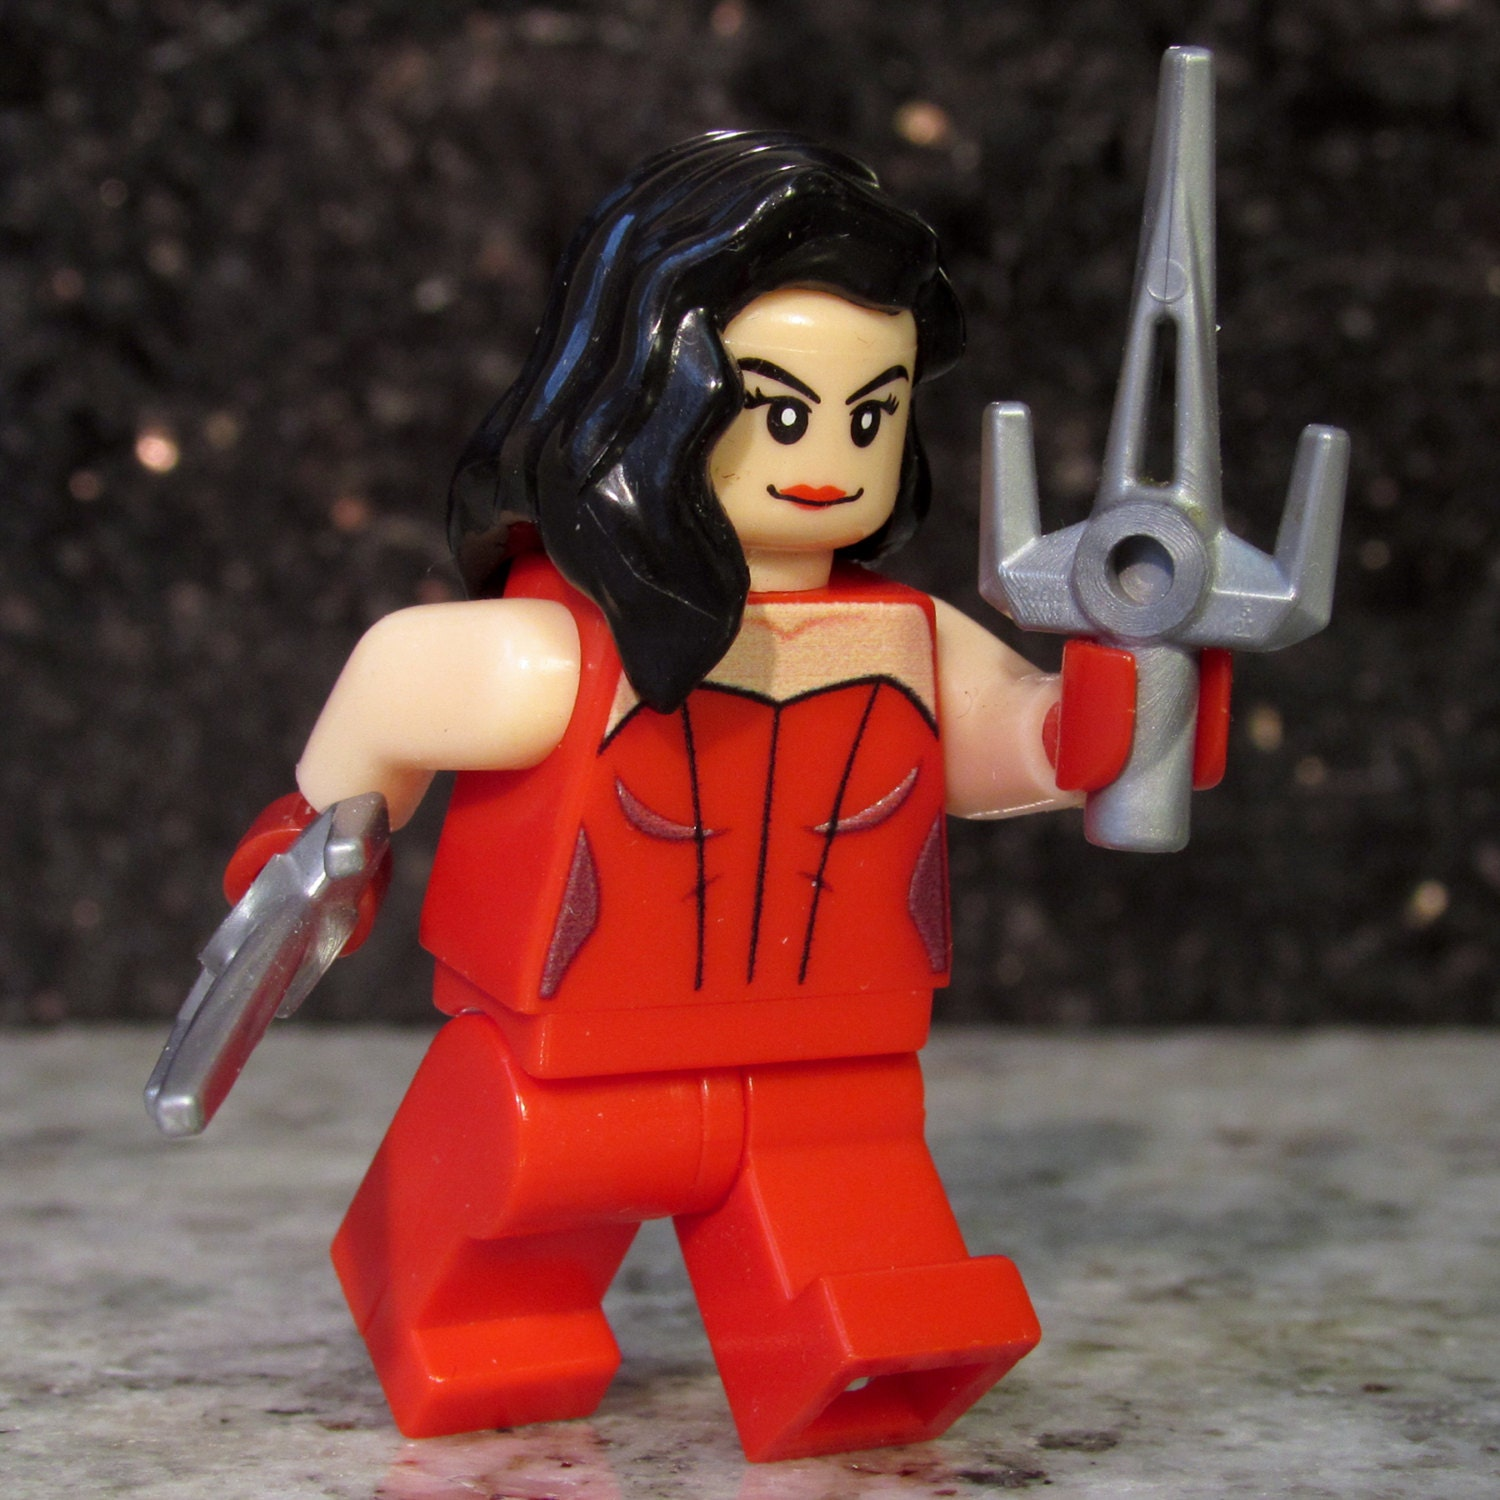 Custom ELEKTRA Minifigure with Lego size Sai swords Marvel